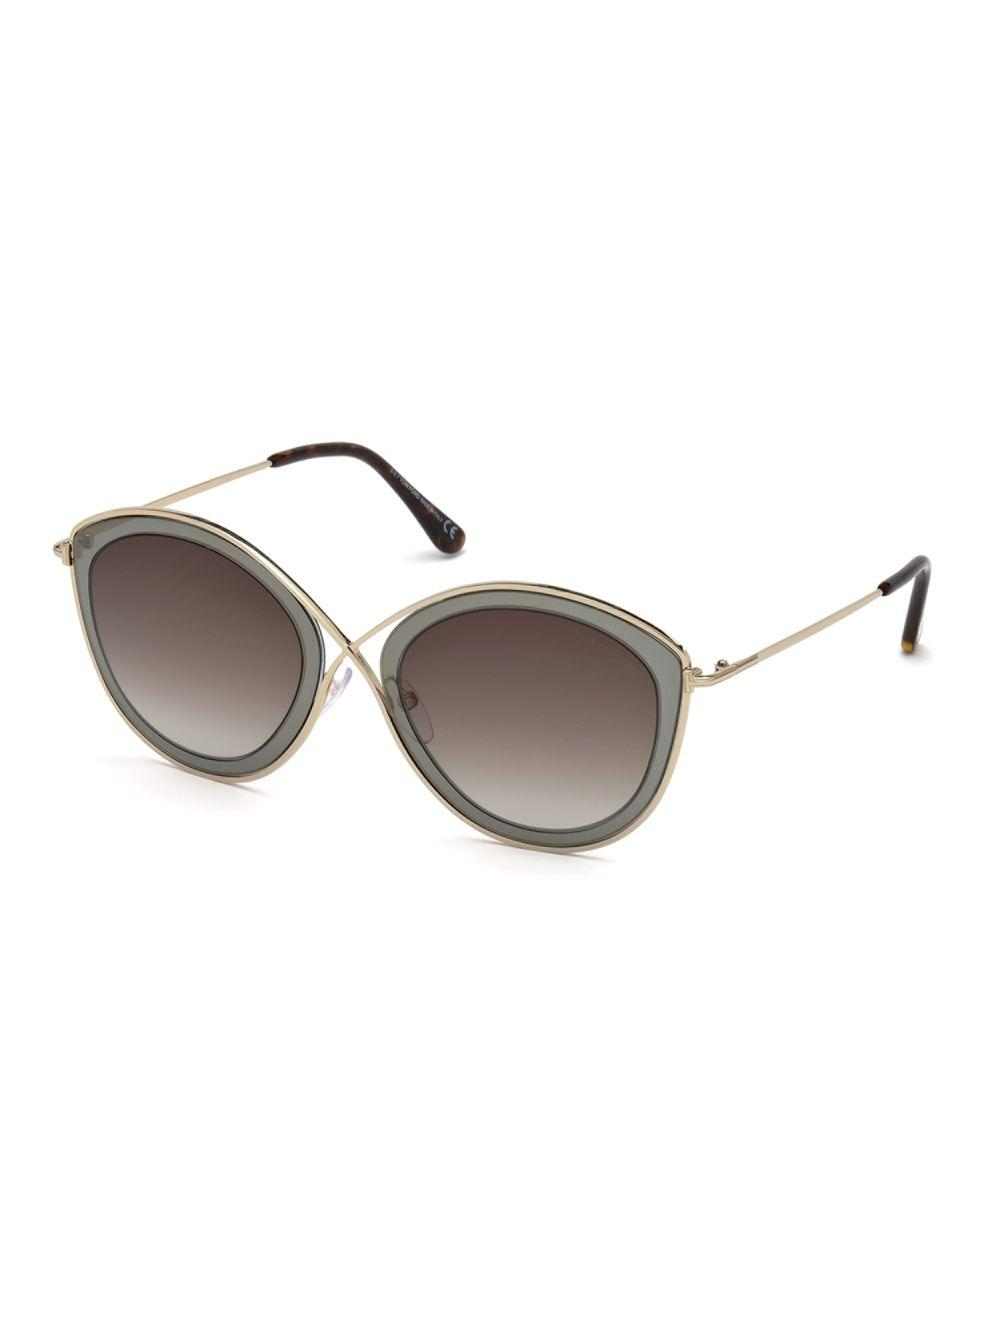 e0dc6e5dd8bb Tom Ford Sascha 55mm Butterfly Sunglasses in Gray - Lyst